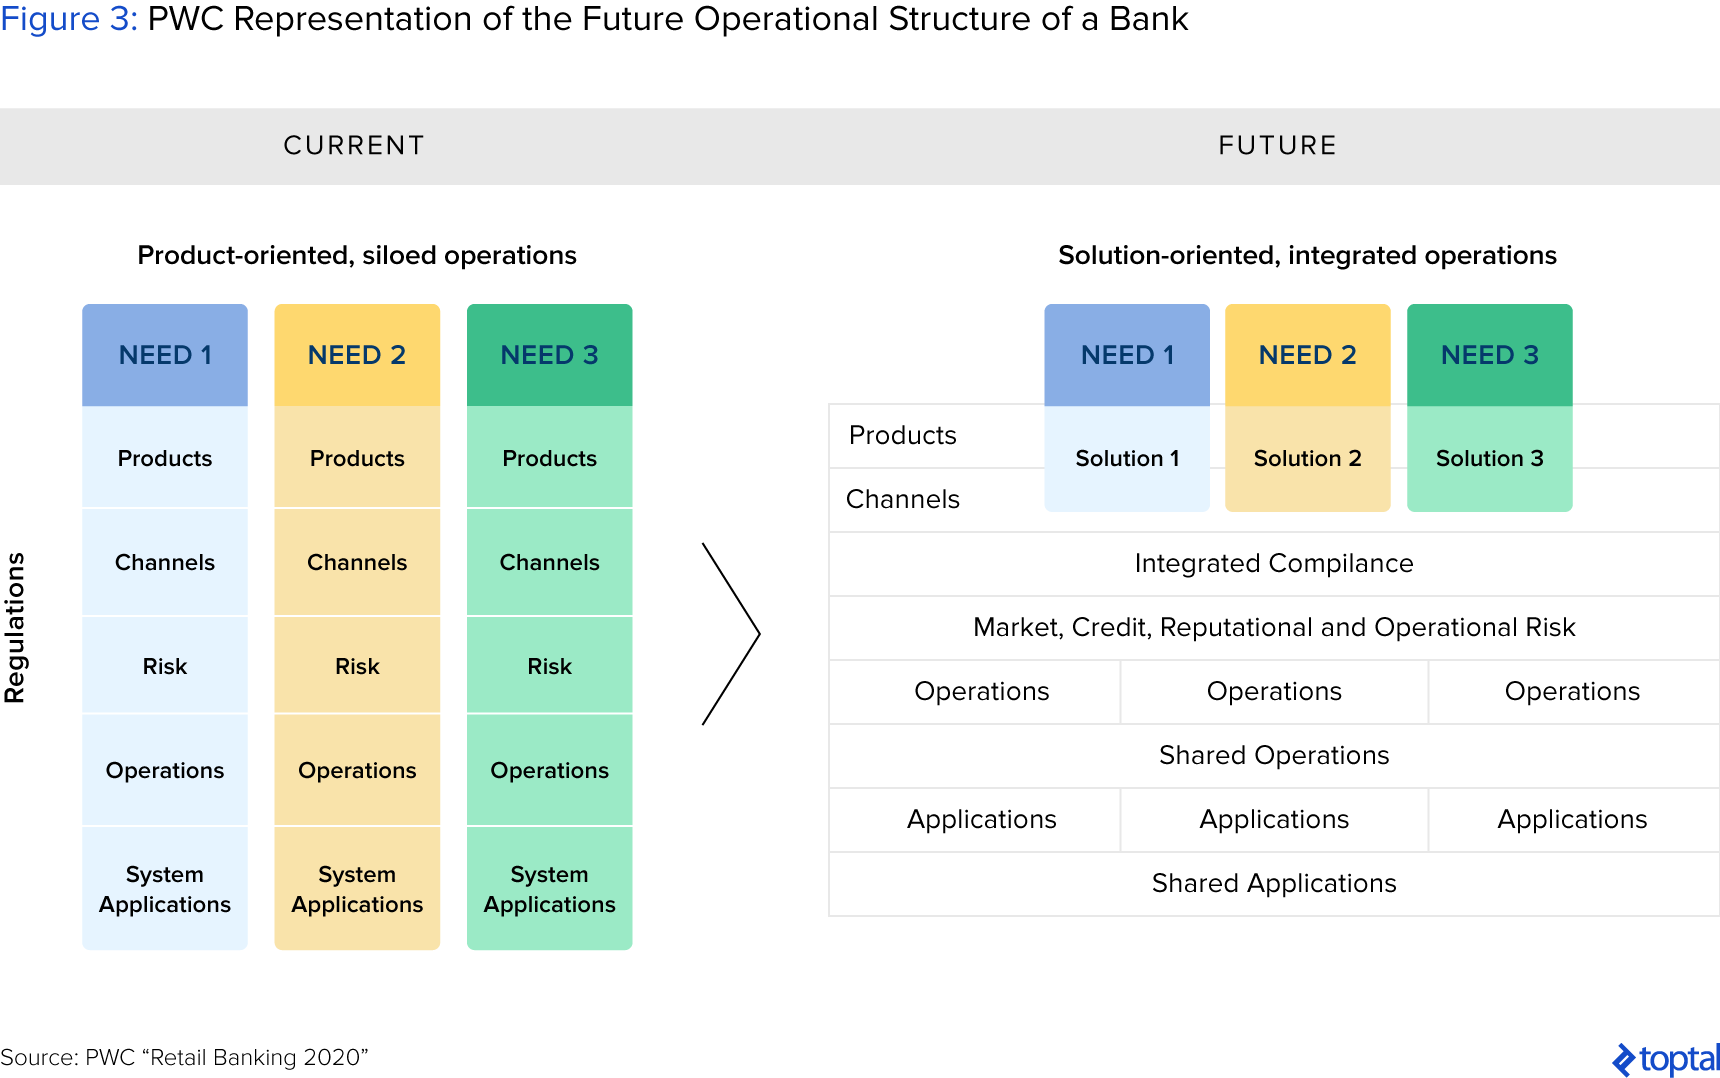 Figure 3: PWC Representation of the Future Operational Structure of a Bank